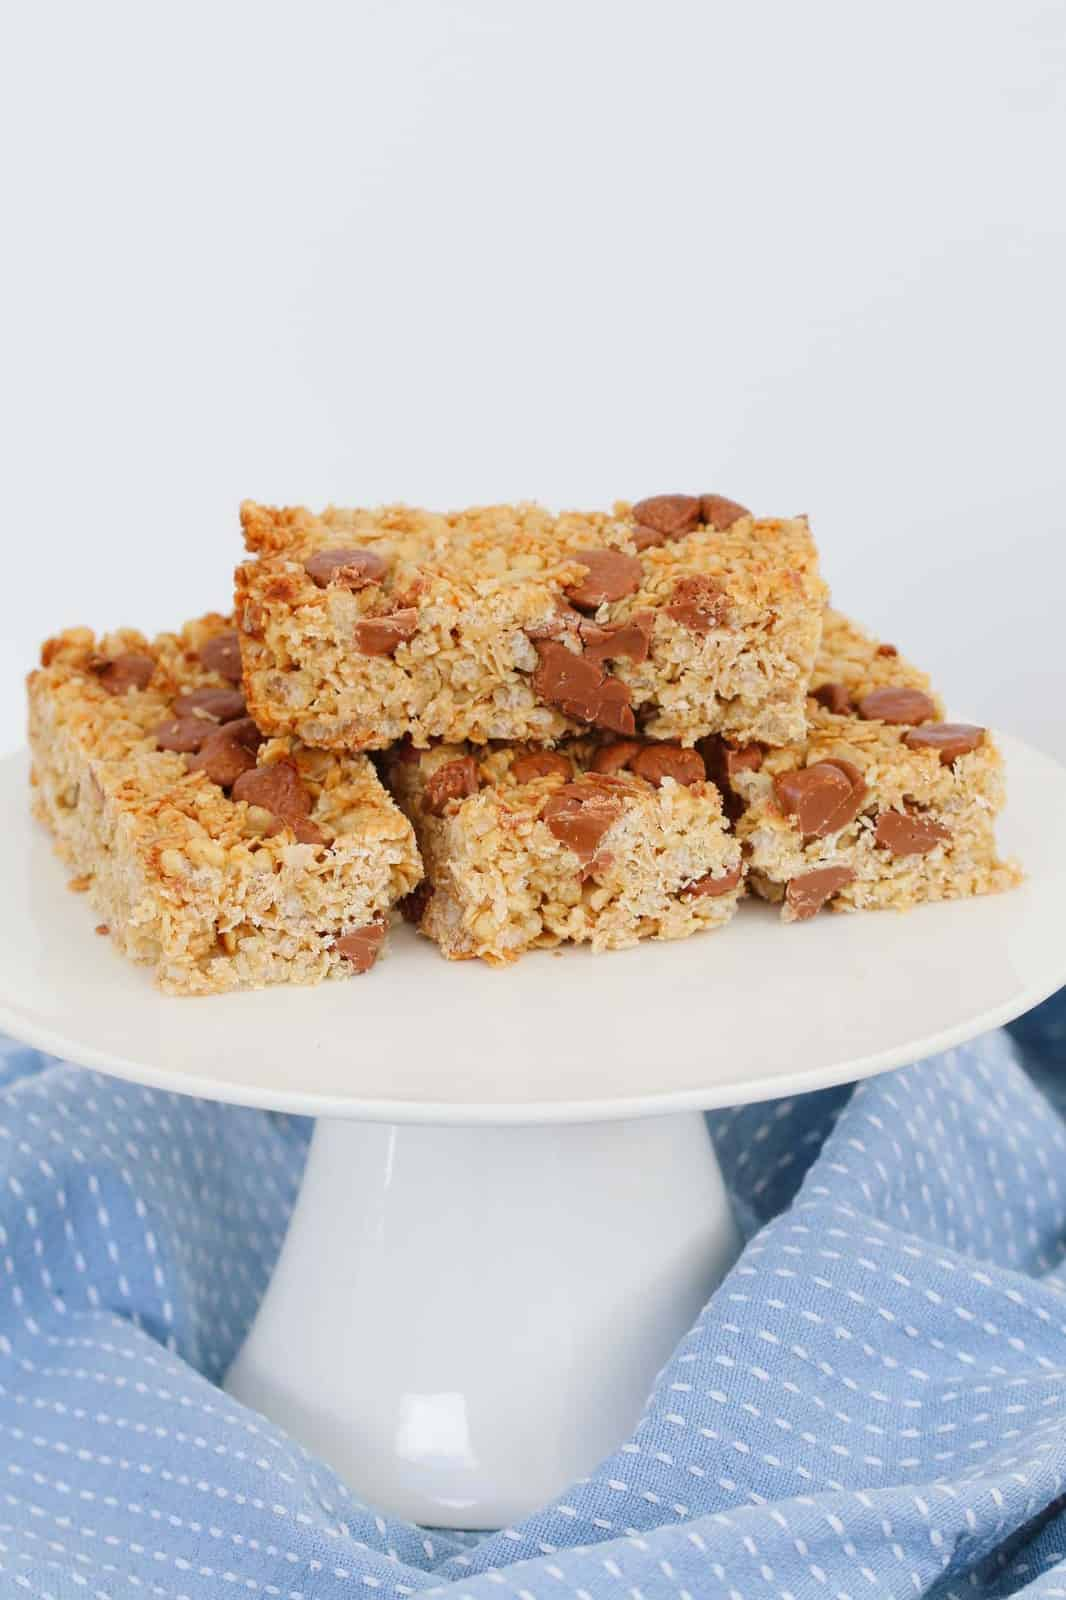 Granola bars made with chocolate chips, stacked on a white cake stand with a blue teatowel around the base